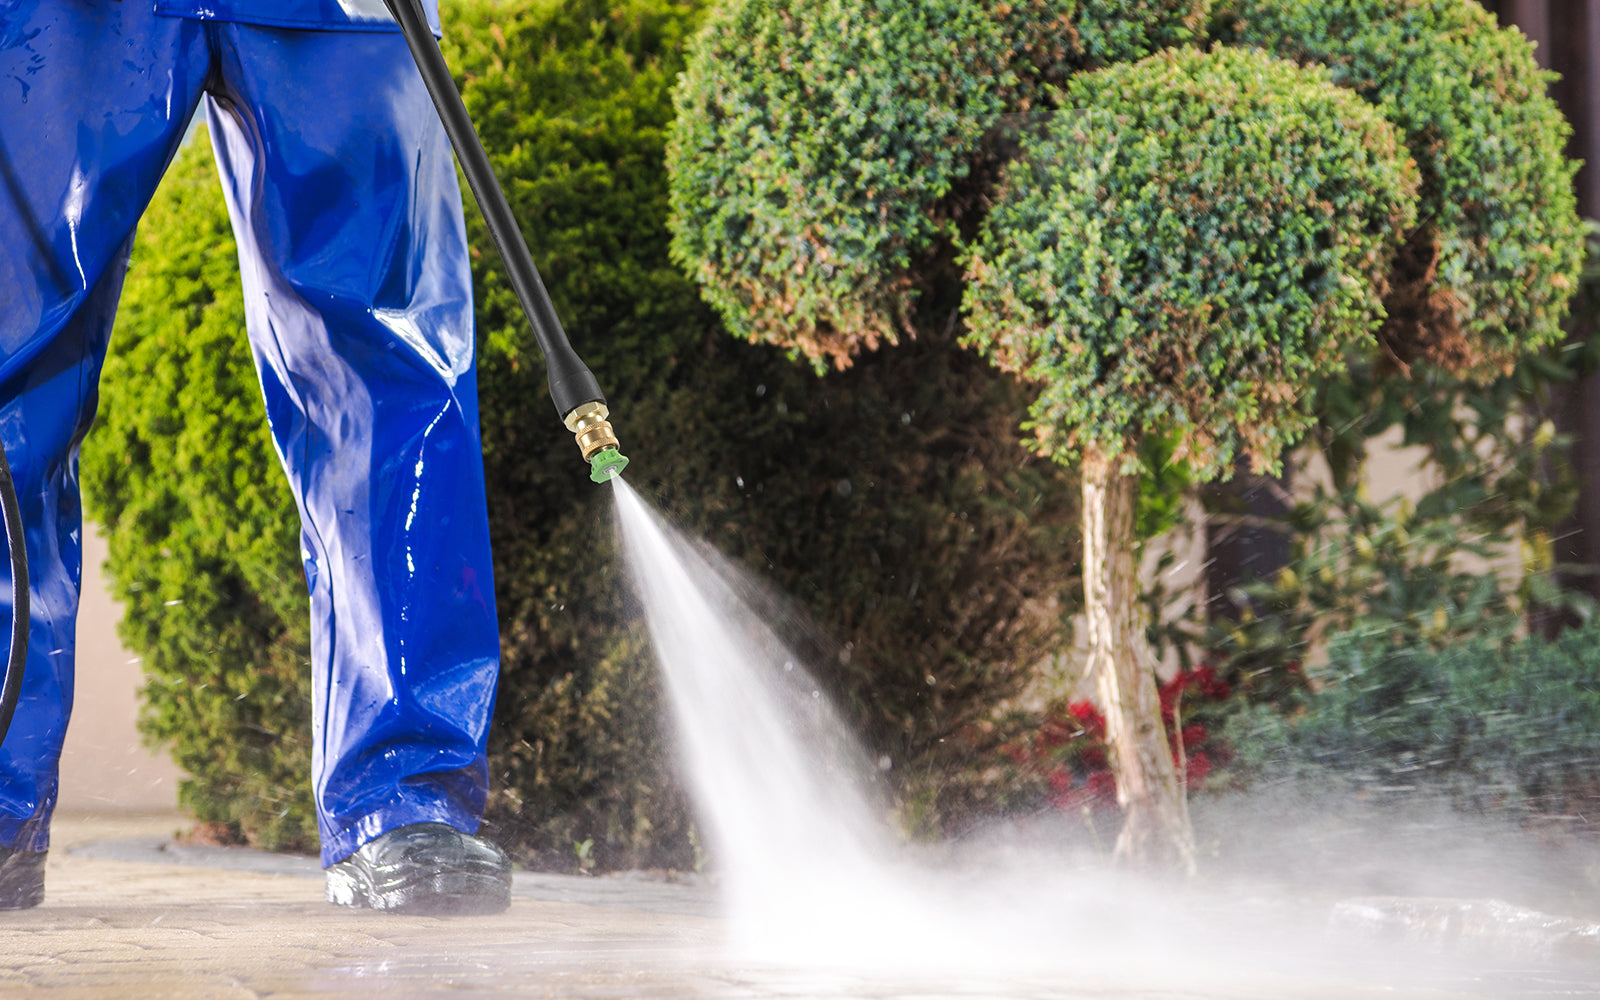 Greenwork Pressure Washers VS WestForce Pressure Washers?